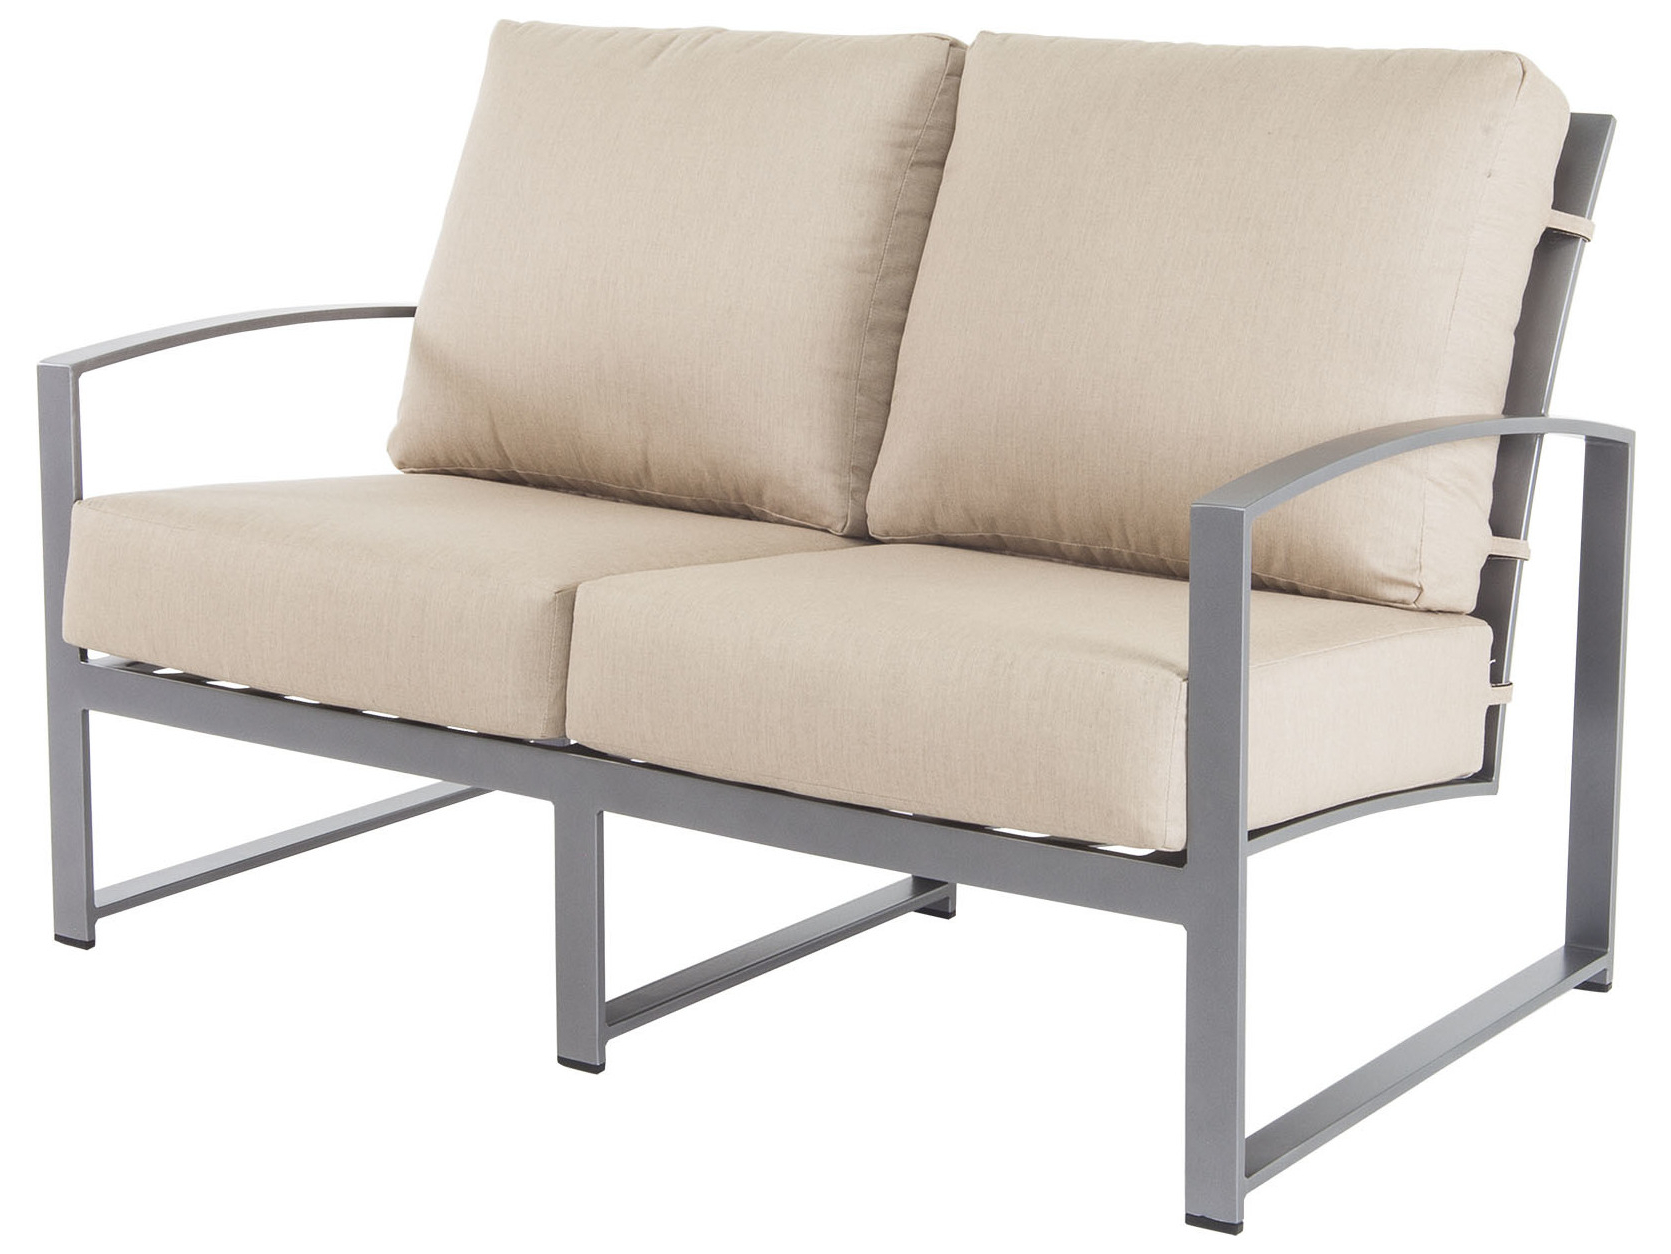 Outdoor Living Pacifica Piece Lounge Sets Throughout 2020 Ow Lee Pacifica Steel Loveseat Chair (View 25 of 25)